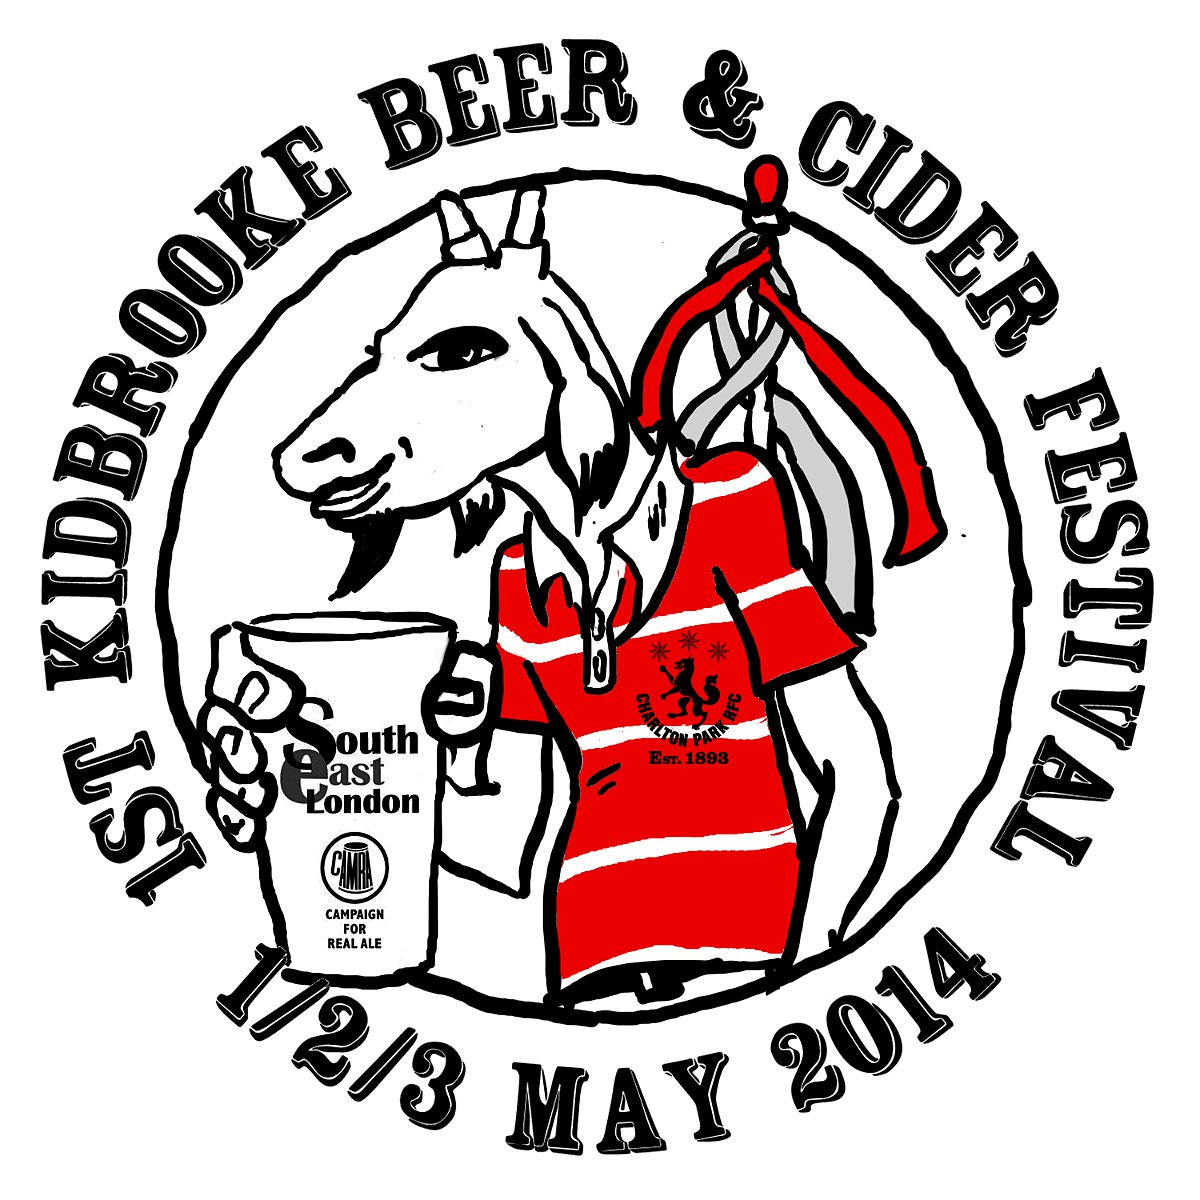 CAMRA's 40th beer and cider festival comes to Kidbrooke